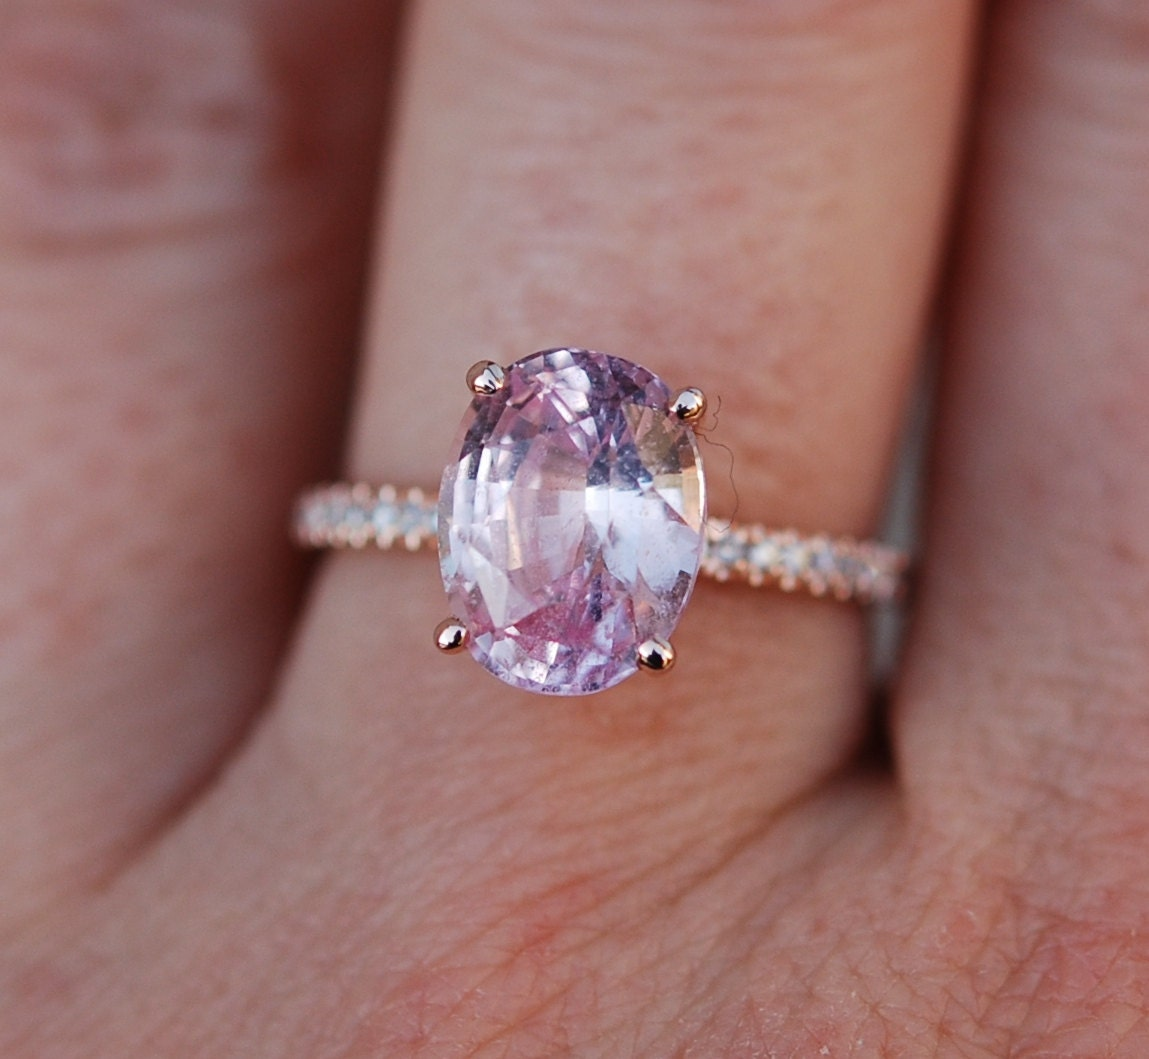 blake lively ring peach pink sapphire engagement ring oval cut. Black Bedroom Furniture Sets. Home Design Ideas